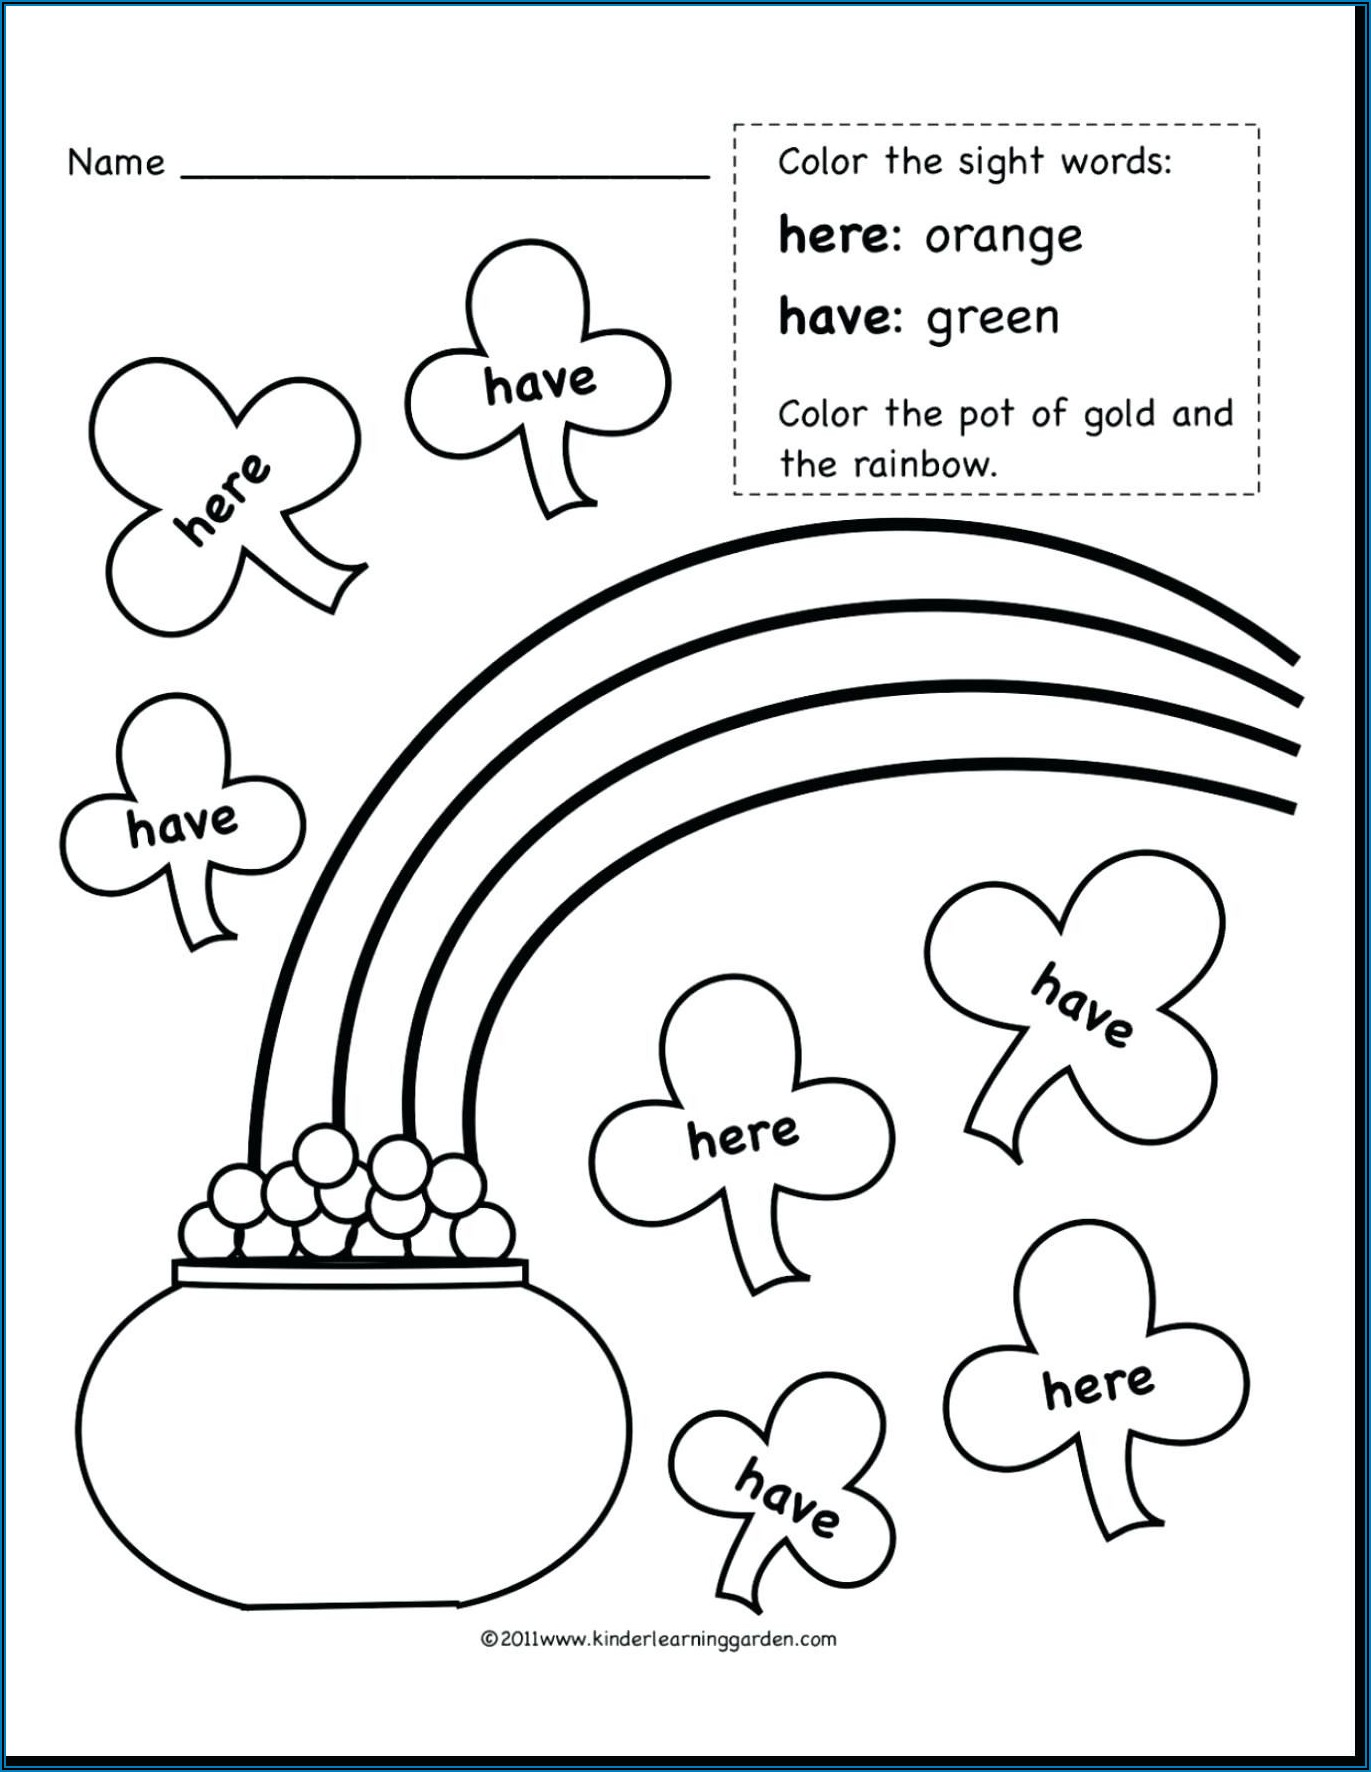 Coloring Worksheet For Sight Words